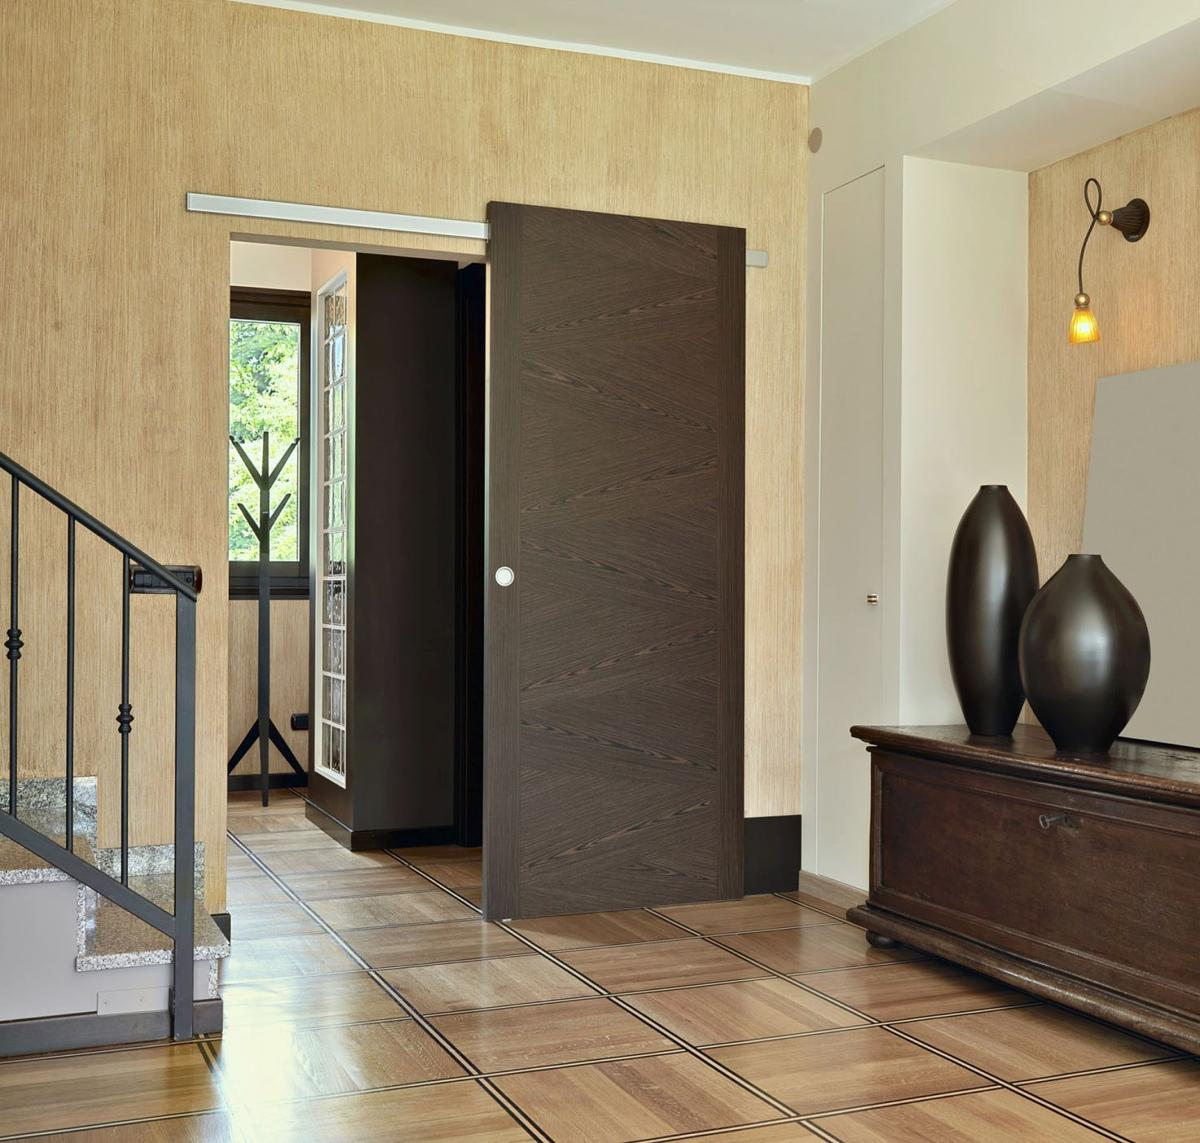 Changes To Interior Doors Add Subtle Drama To Home Home Garden